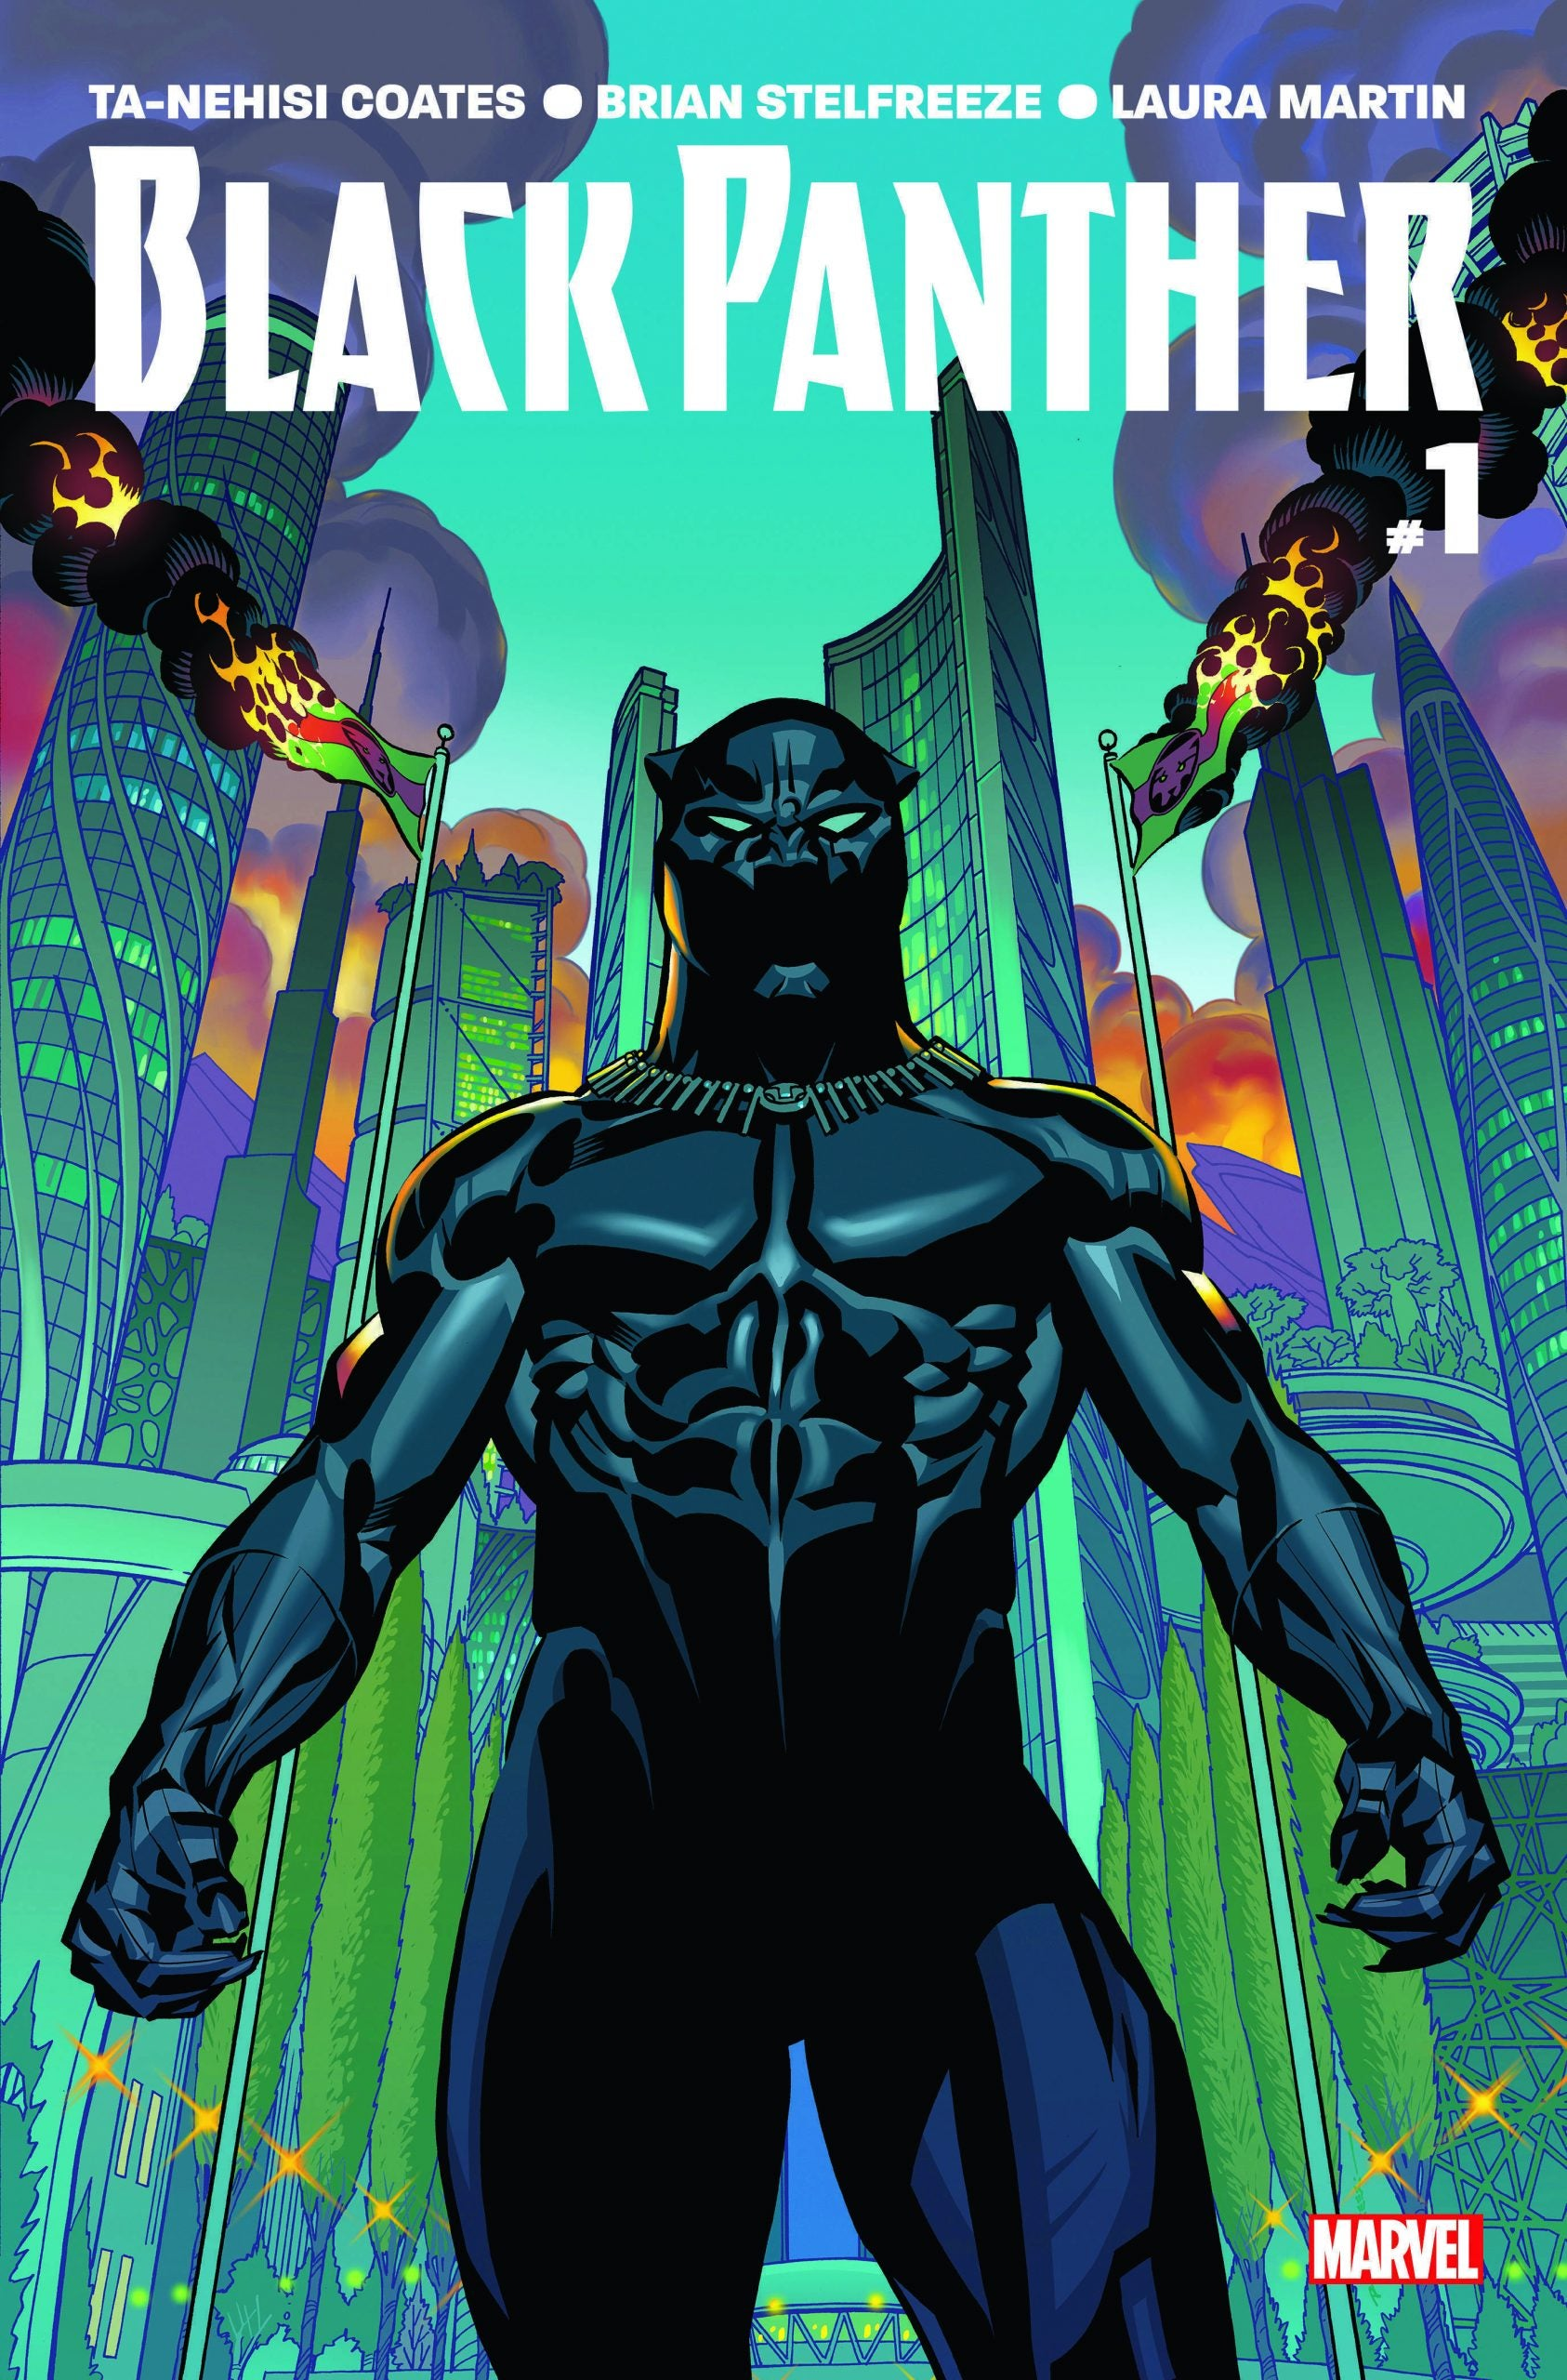 The ambiguous heroism of Ta-Nehisi Coates's Black Panther